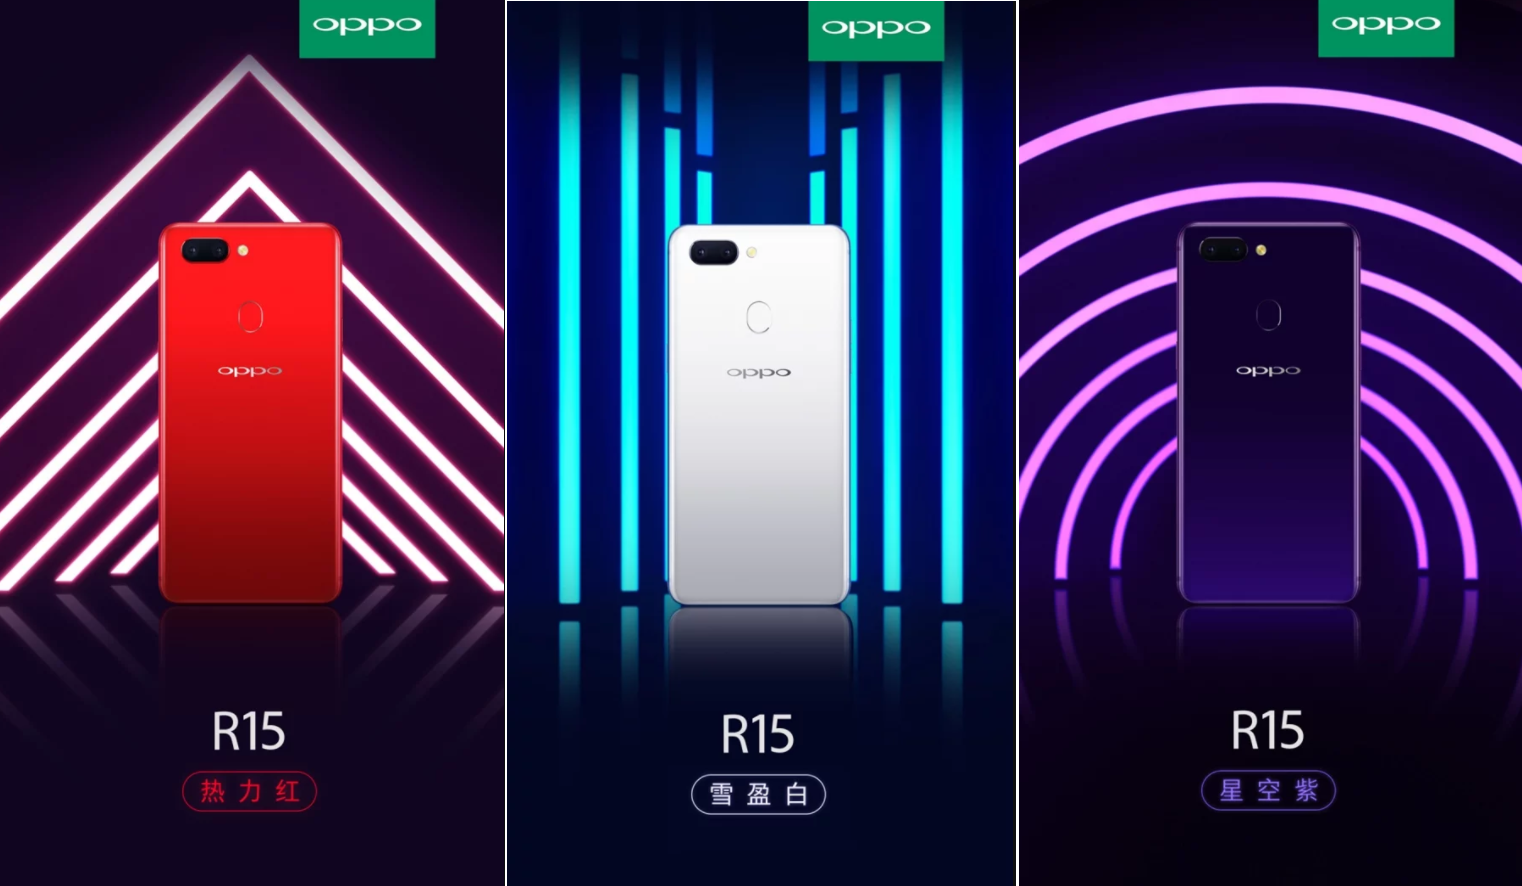 oppo-r15- specification, oppo r15 price in india, oppo r15 mobile,